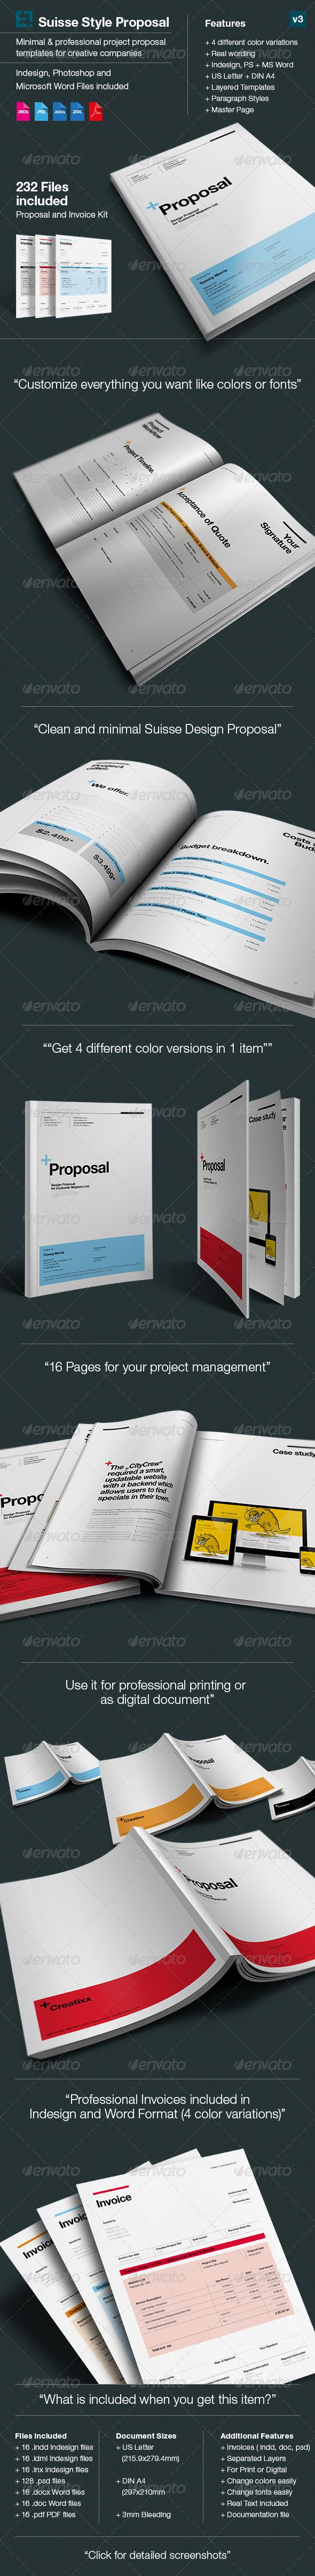 Proposal Minimal and Professional Project Proposal template for creative businesses, created in Adobe InDesign, Photoshop and MS Word, it comes with 4 color variations (black, light blue, red and orange) and two paper sizes including US Letter and International A4.